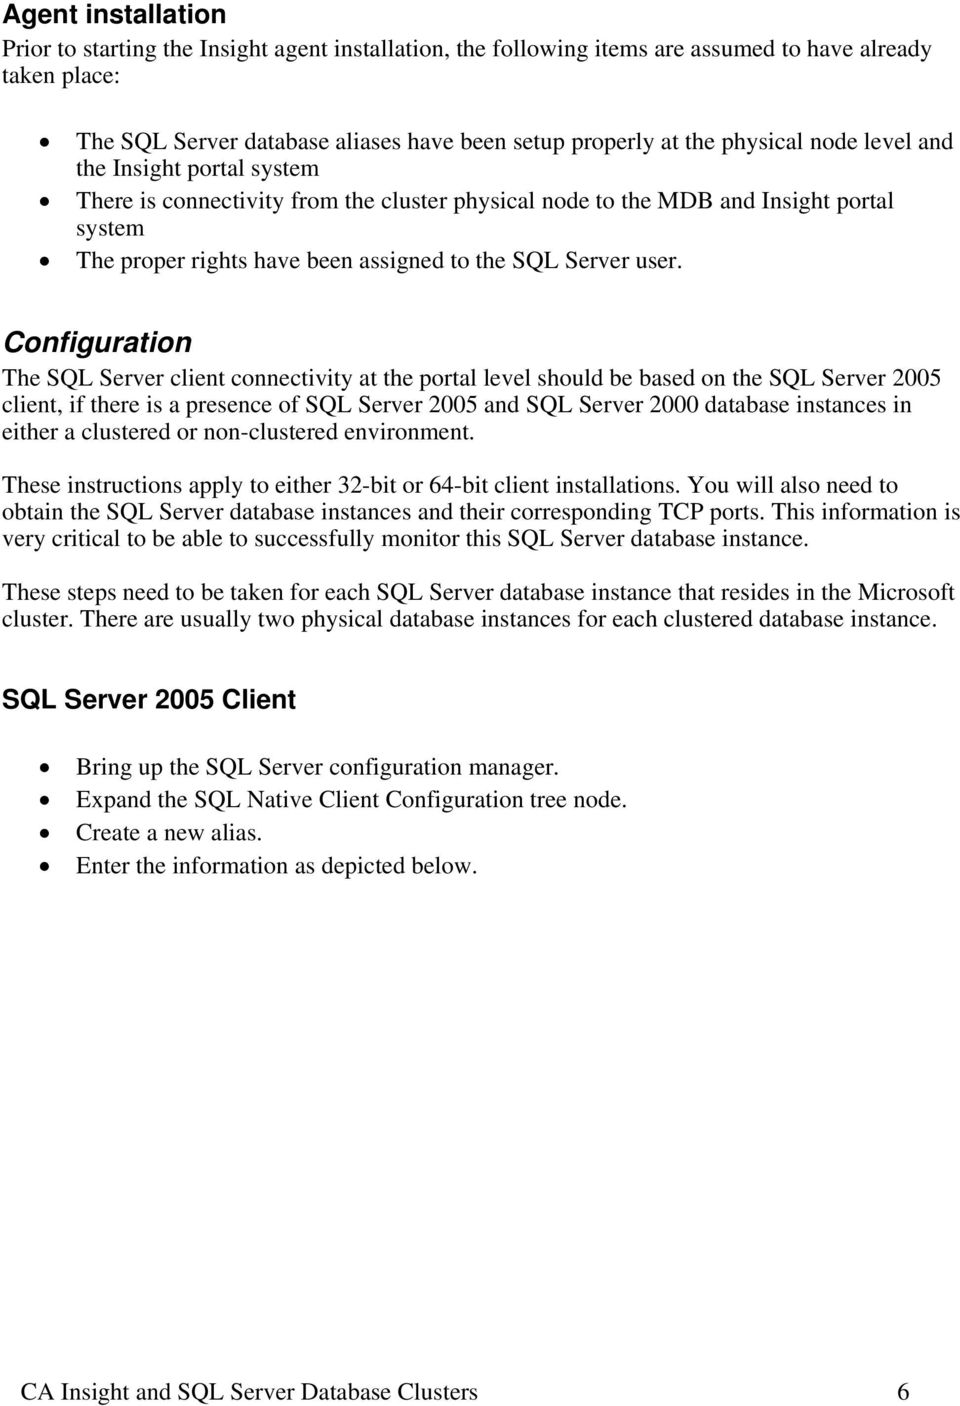 Configuration The SQL Server client connectivity at the portal level should be based on the SQL Server 2005 client, if there is a presence of SQL Server 2005 and SQL Server 2000 database instances in